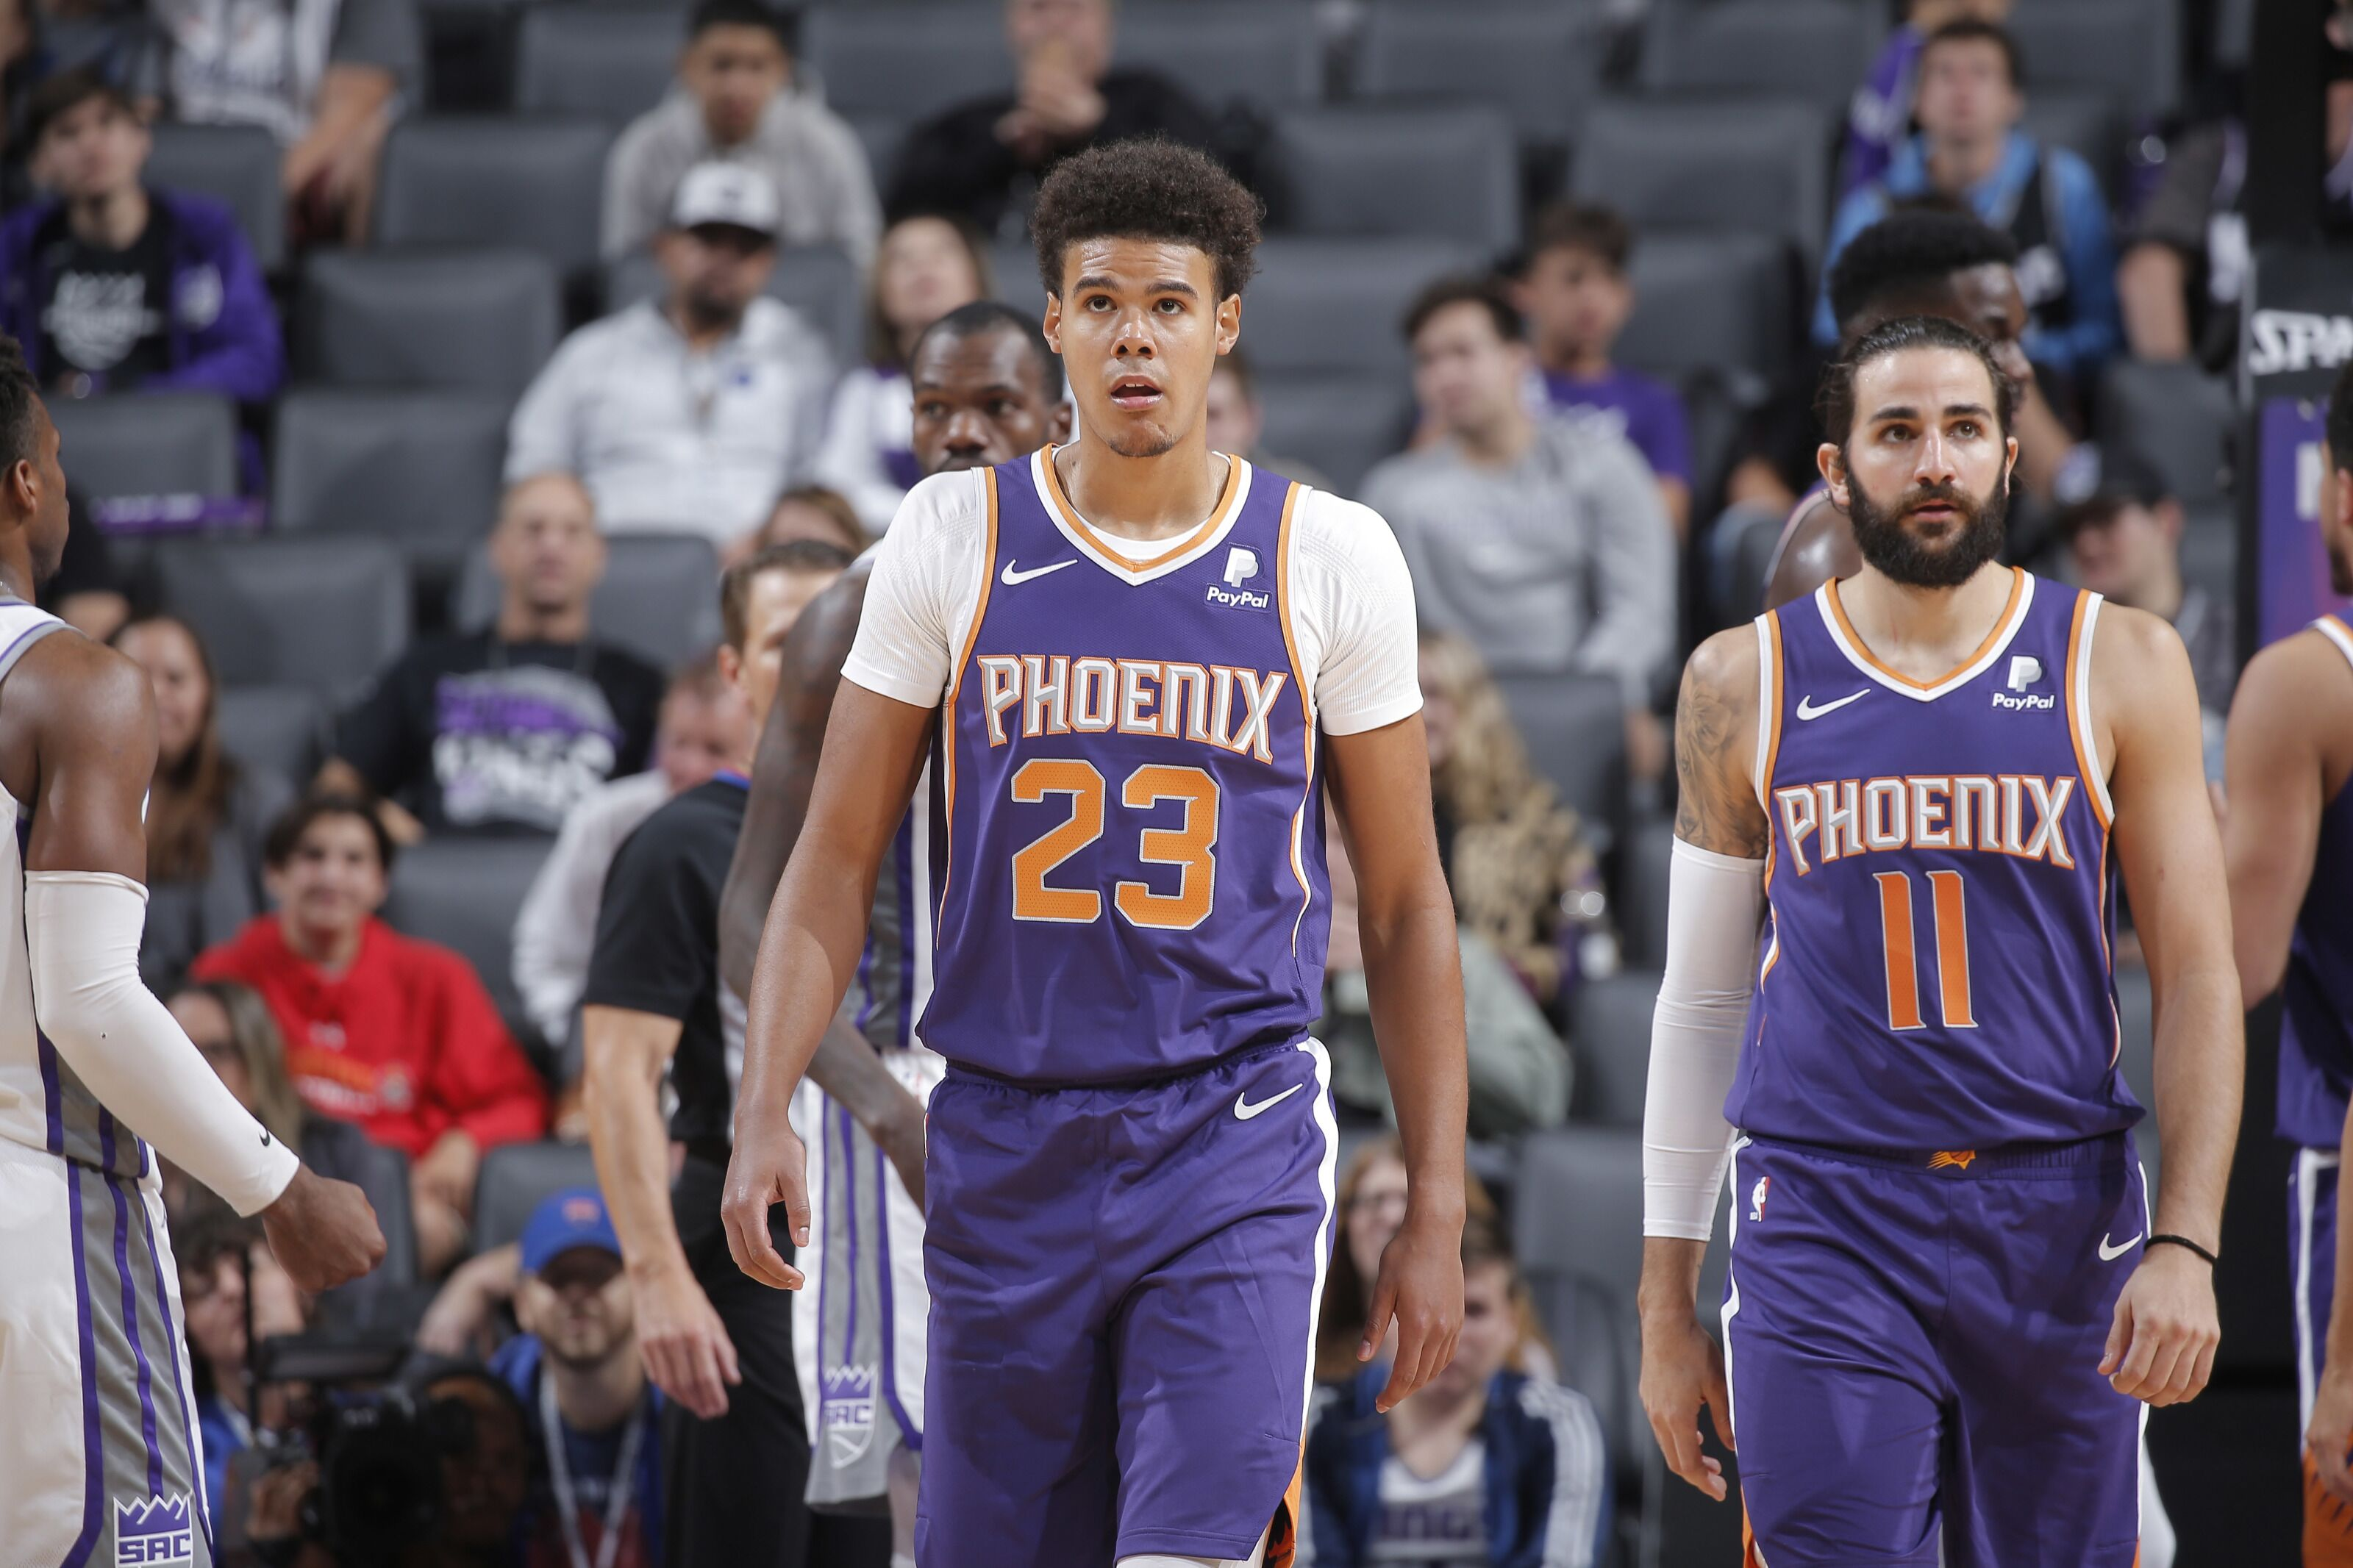 Cameron Johnson should start ahead of Kelly Oubre for the Phoenix Suns